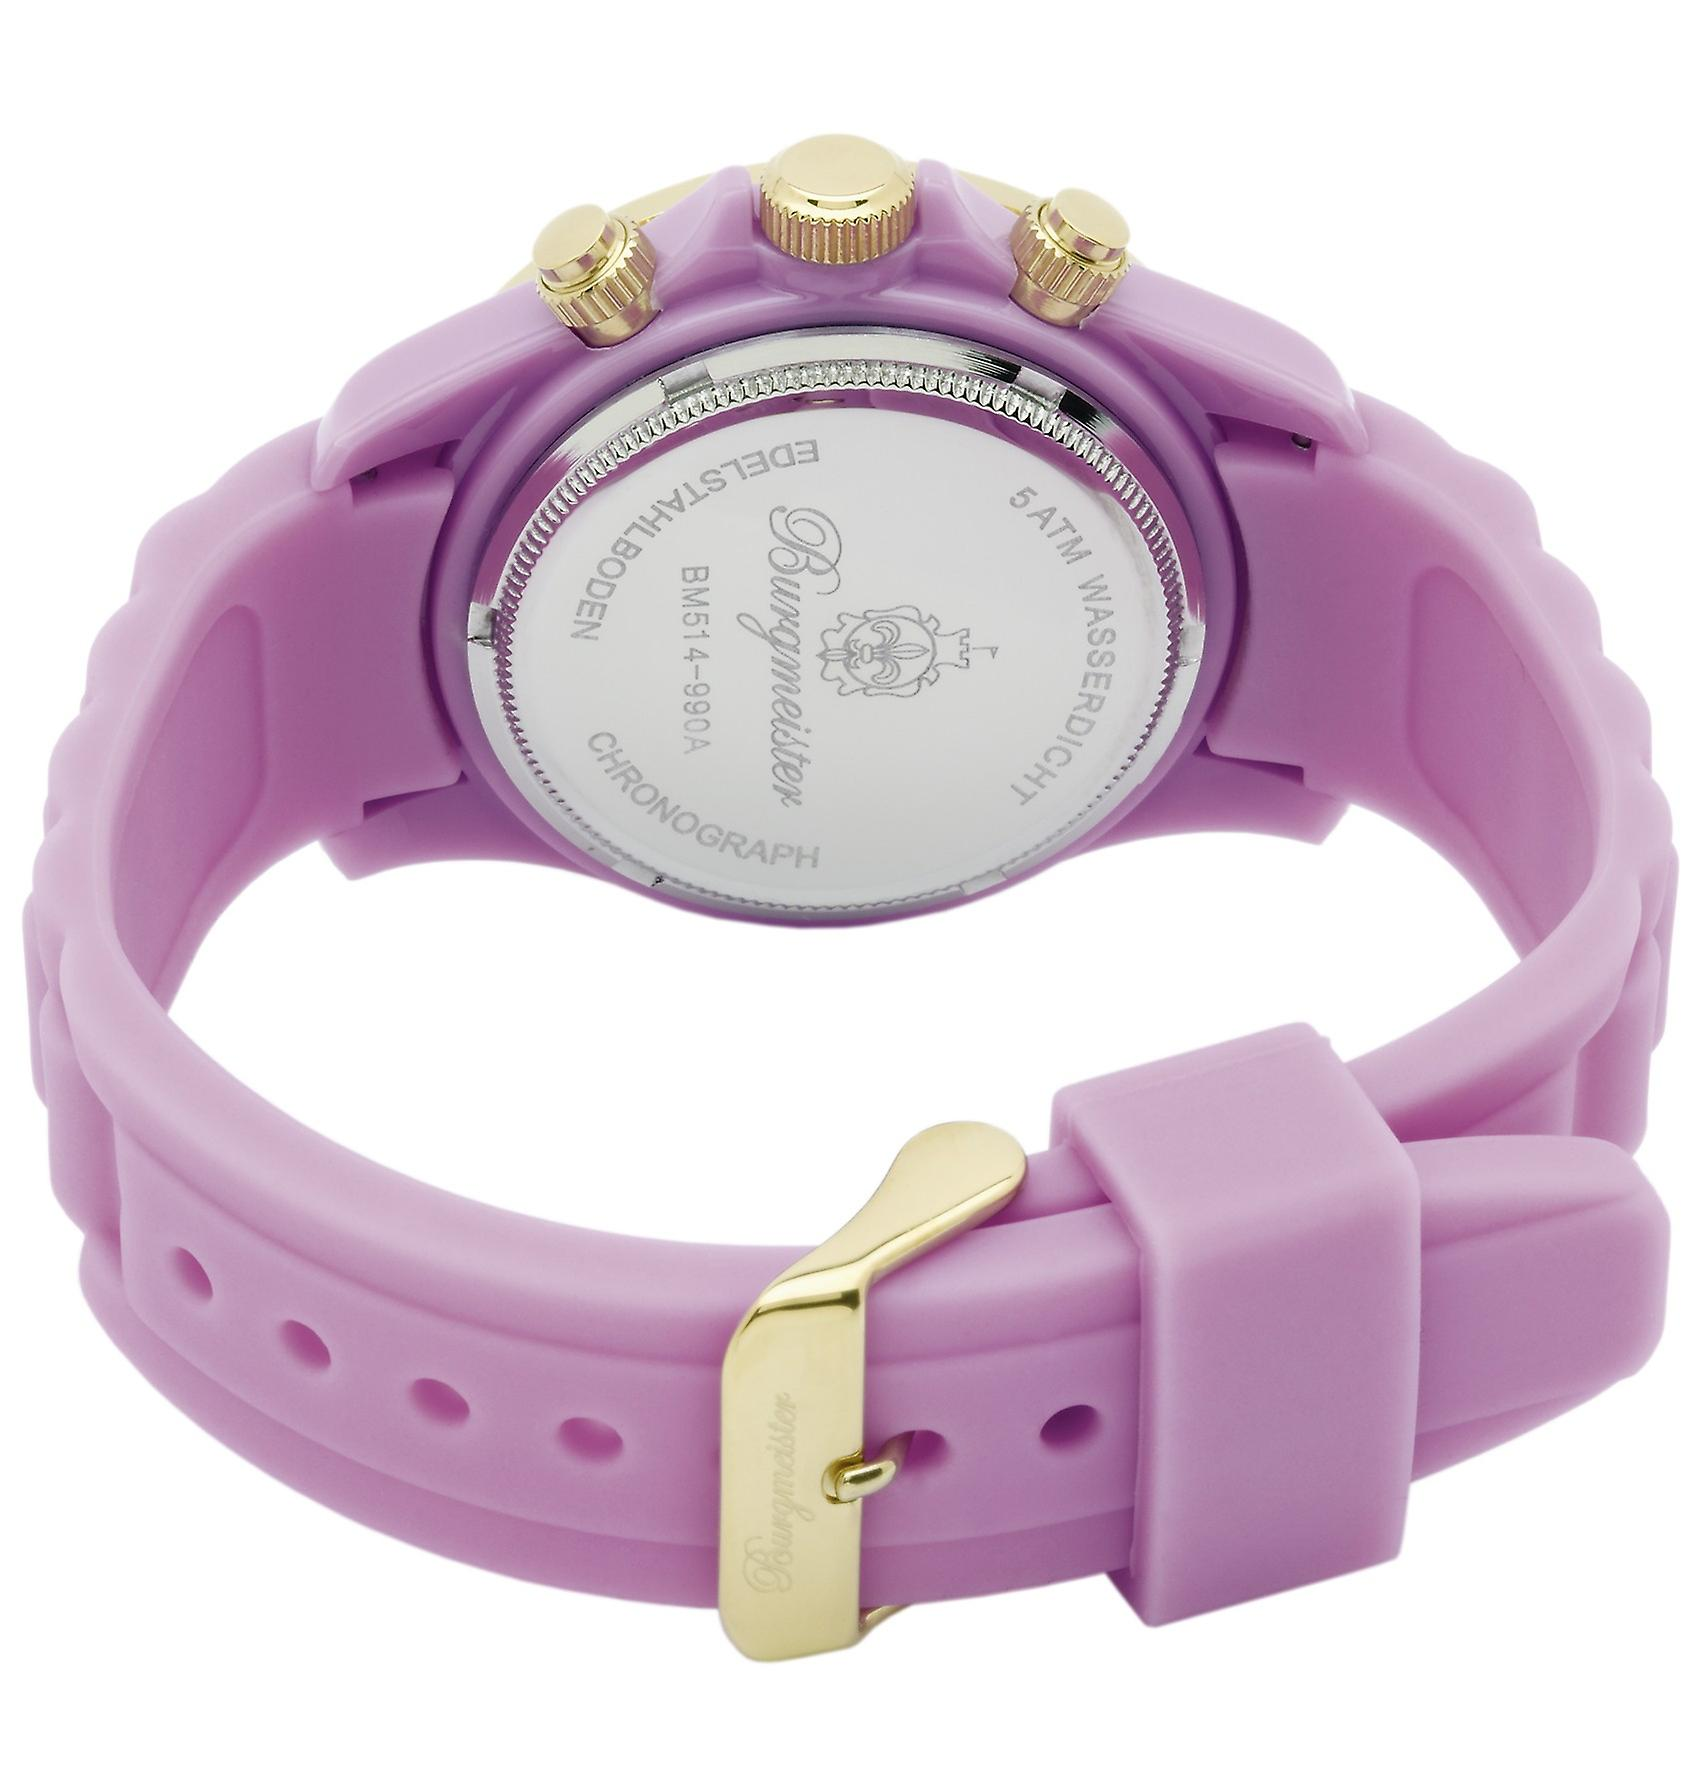 Burgmeister Florida Ladies Chronograph BM514-990A